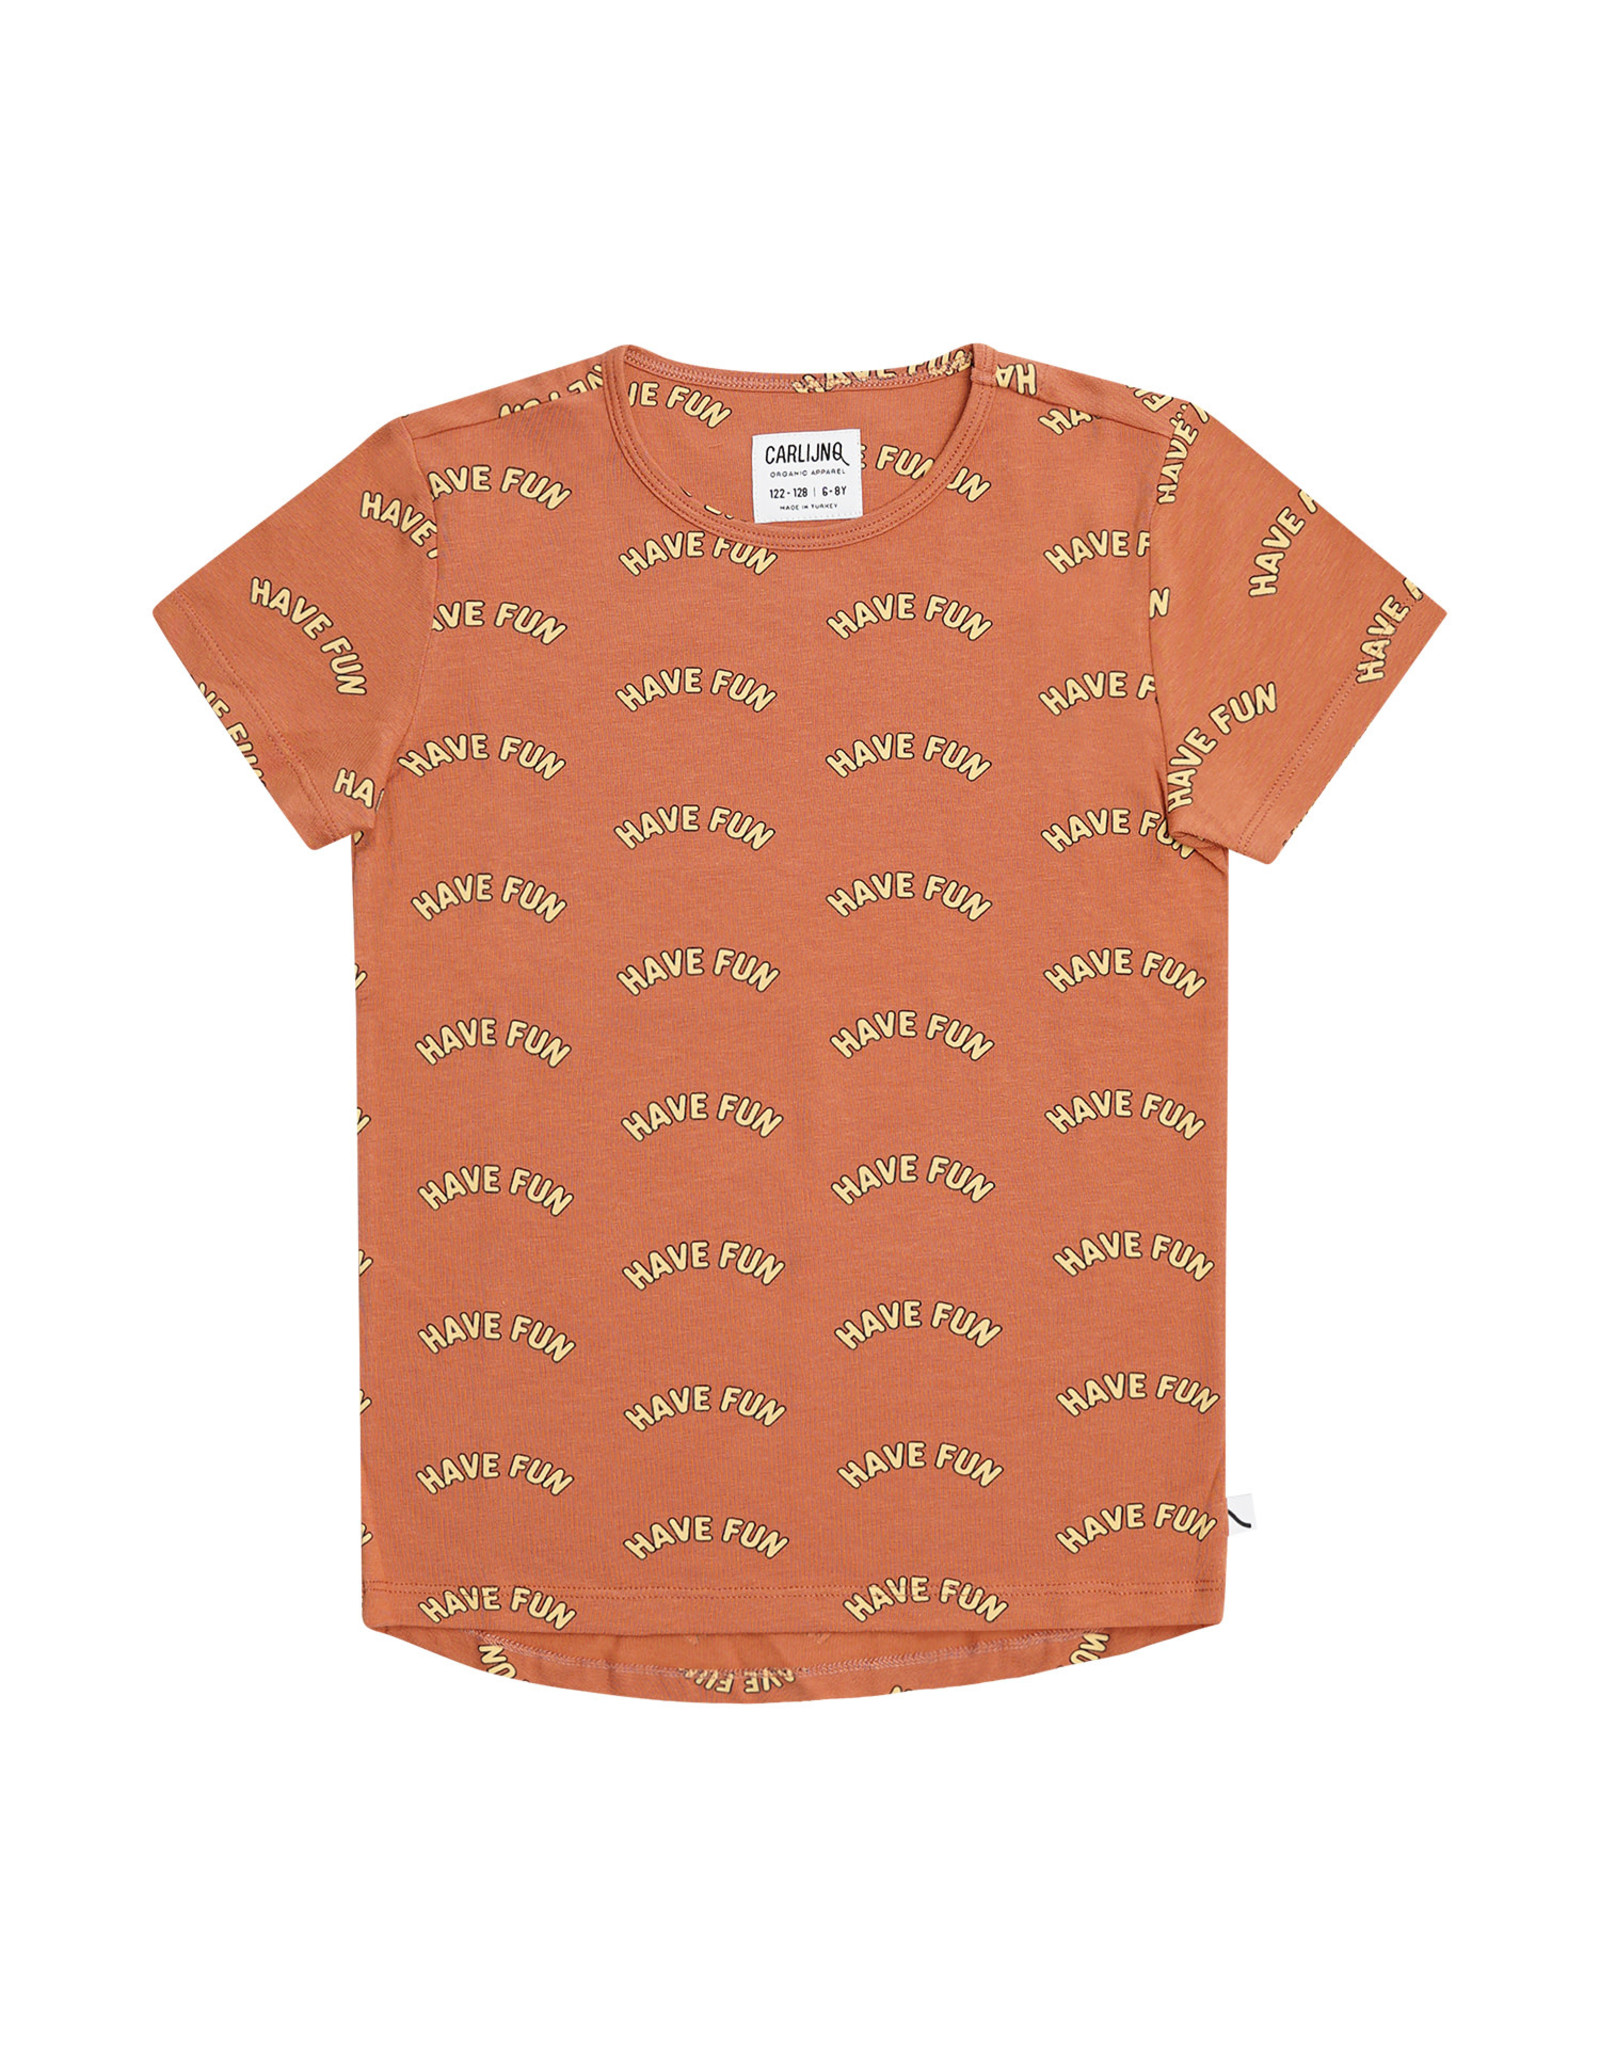 Carlijn Q Carlijn Q Have Fun - Short Sleeve Dropback